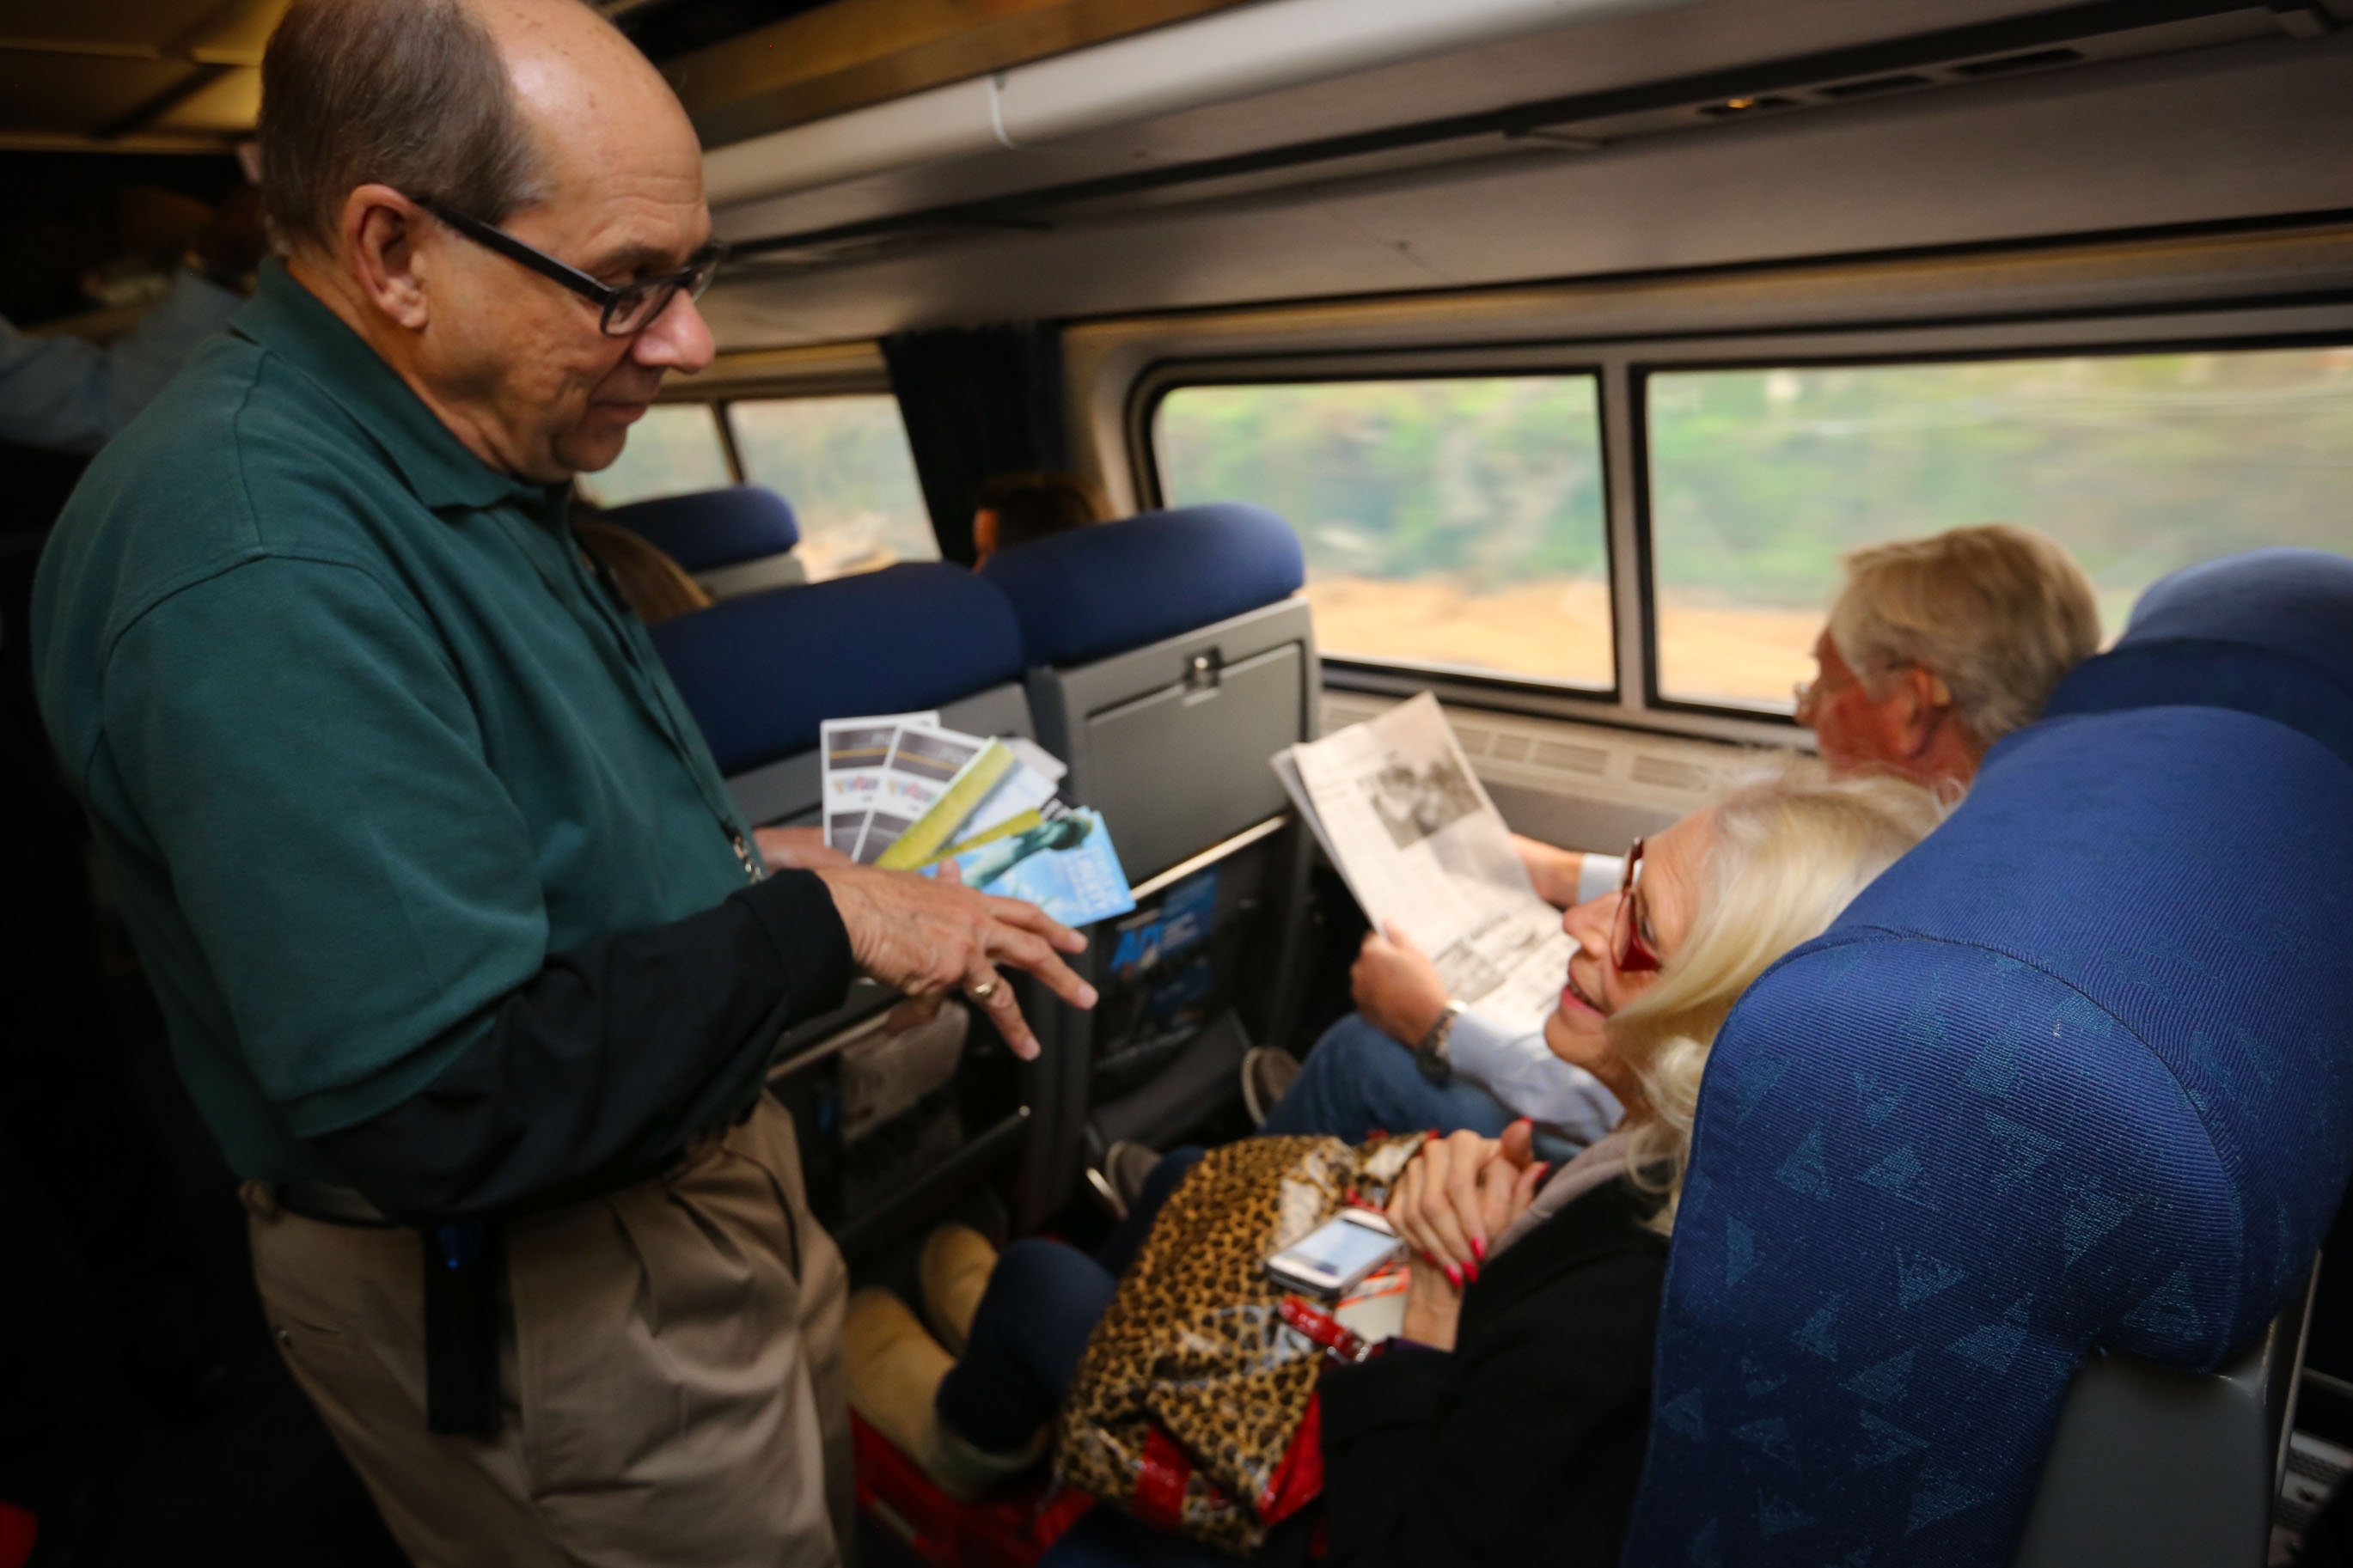 A Trails and Rails volunteer helps Amtrak passengers find their parks during the National Park Service Centennial year.